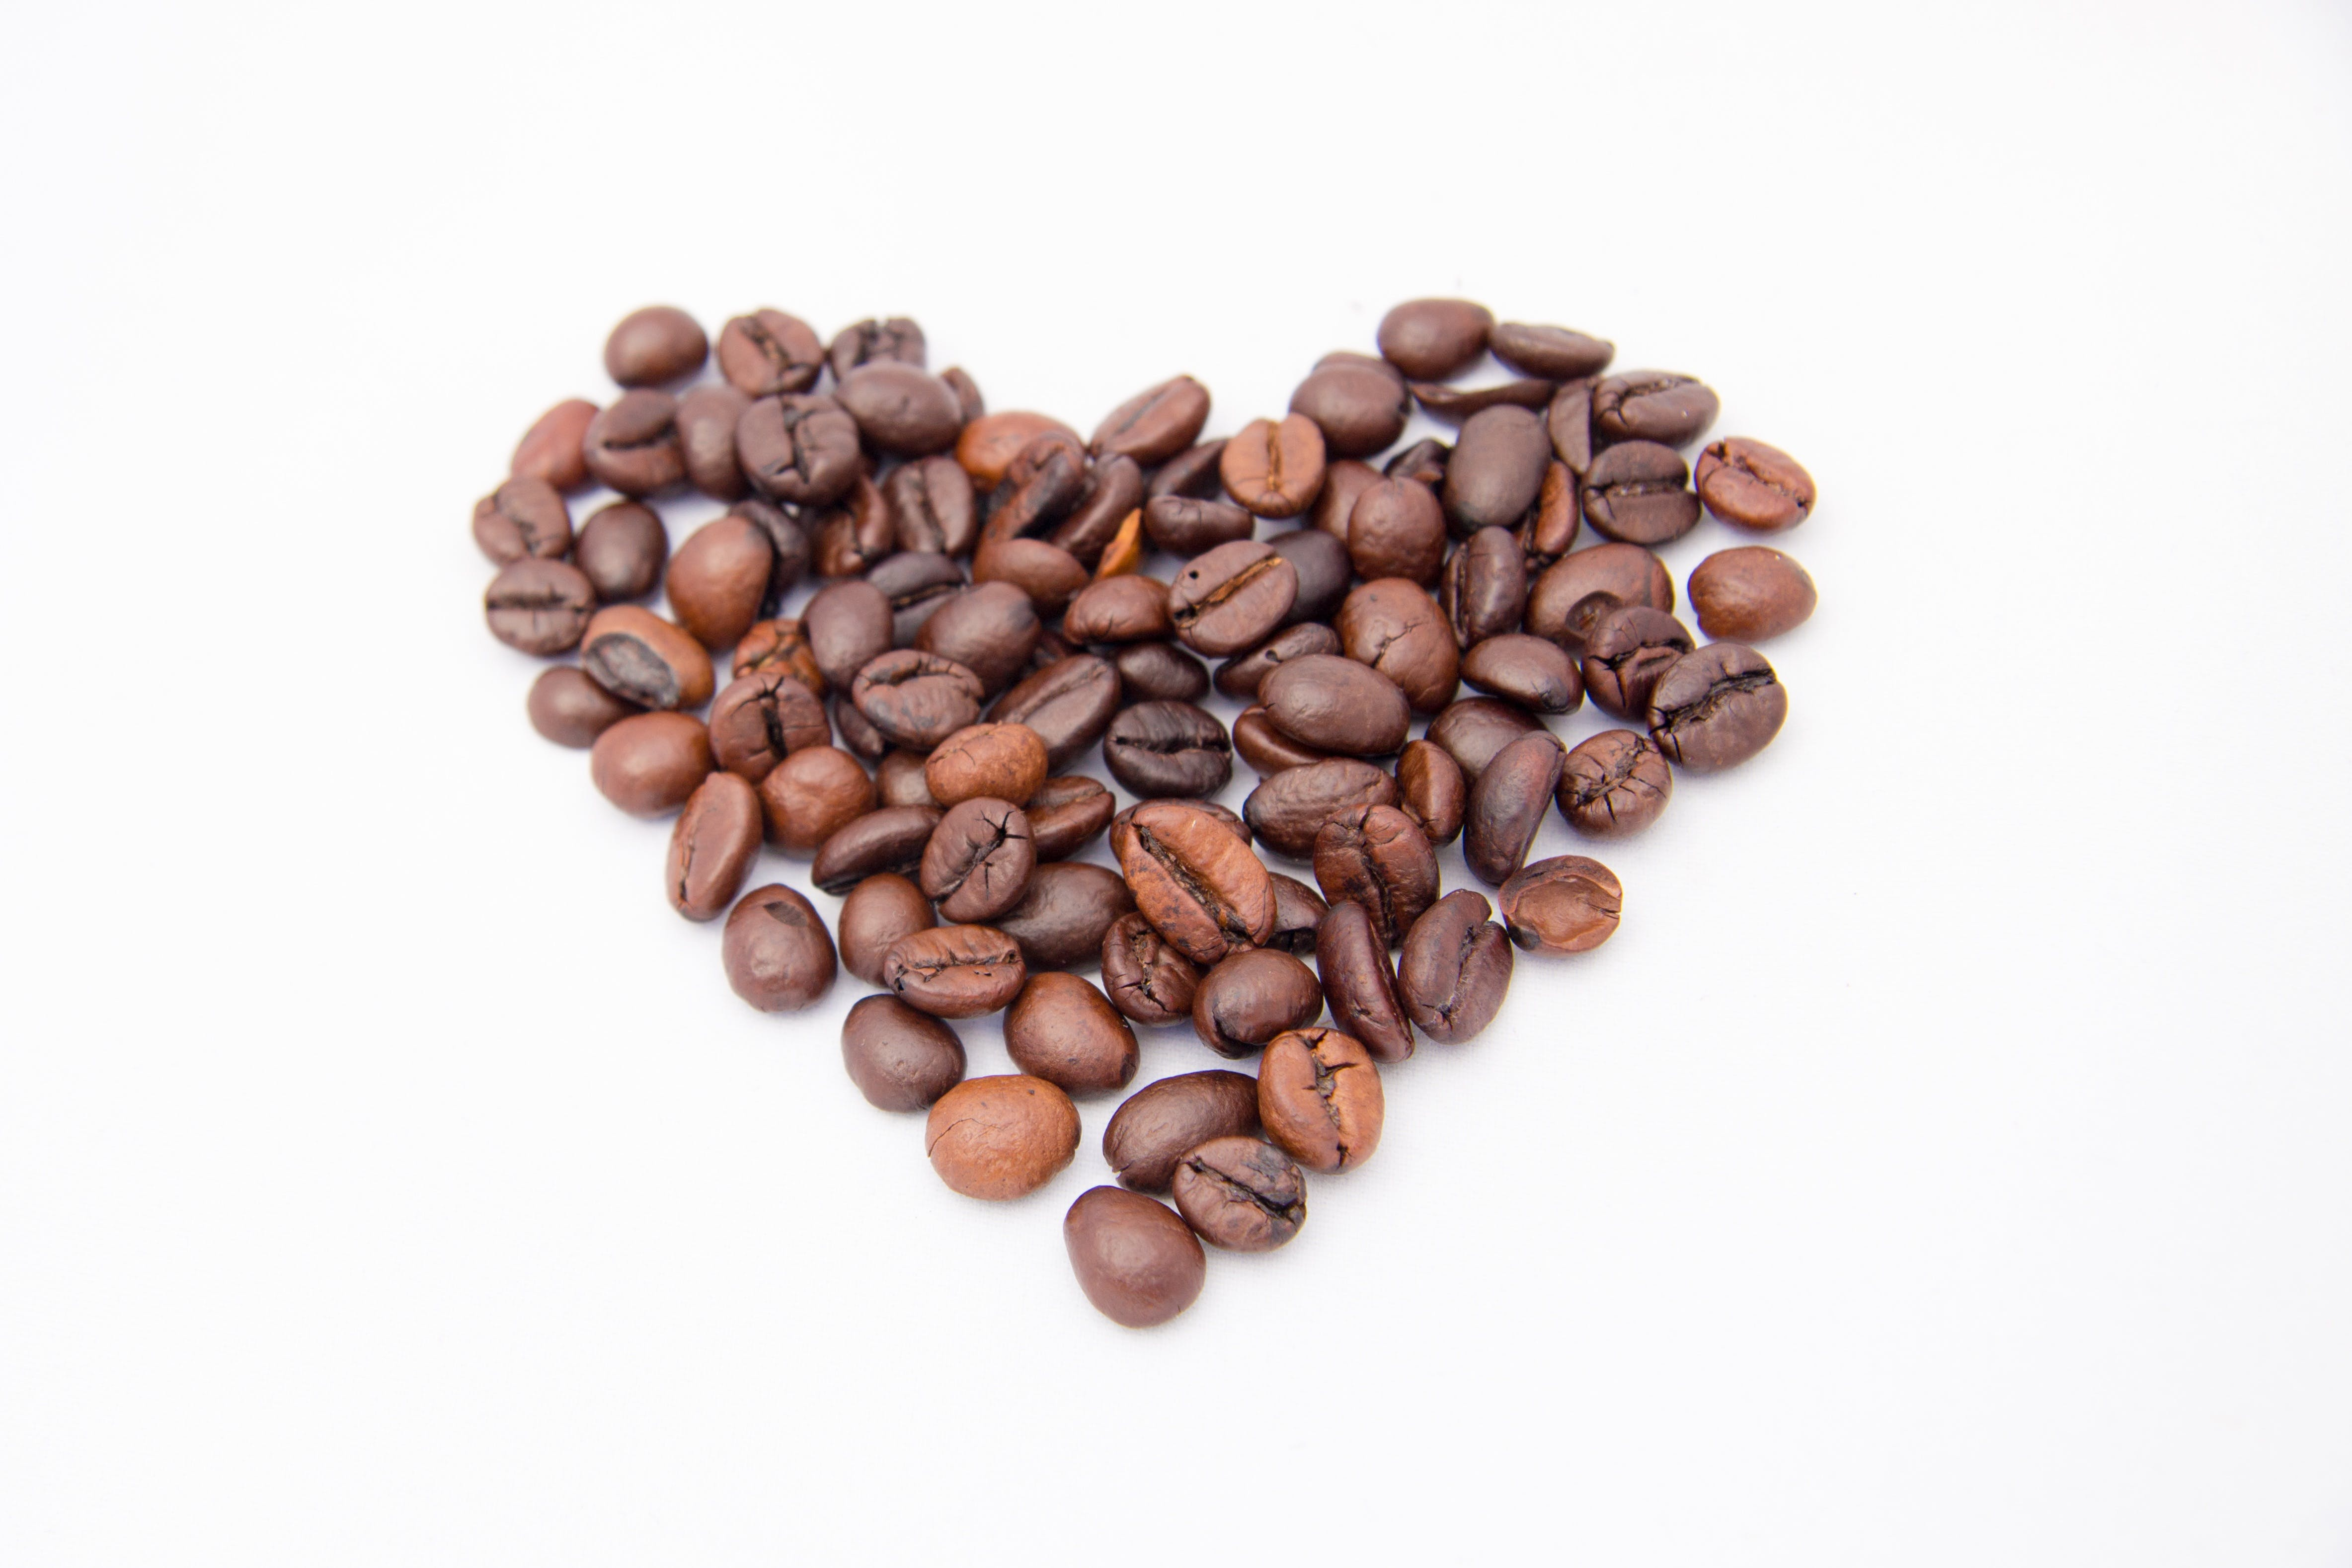 Close-up of Coffee Beans on White Background